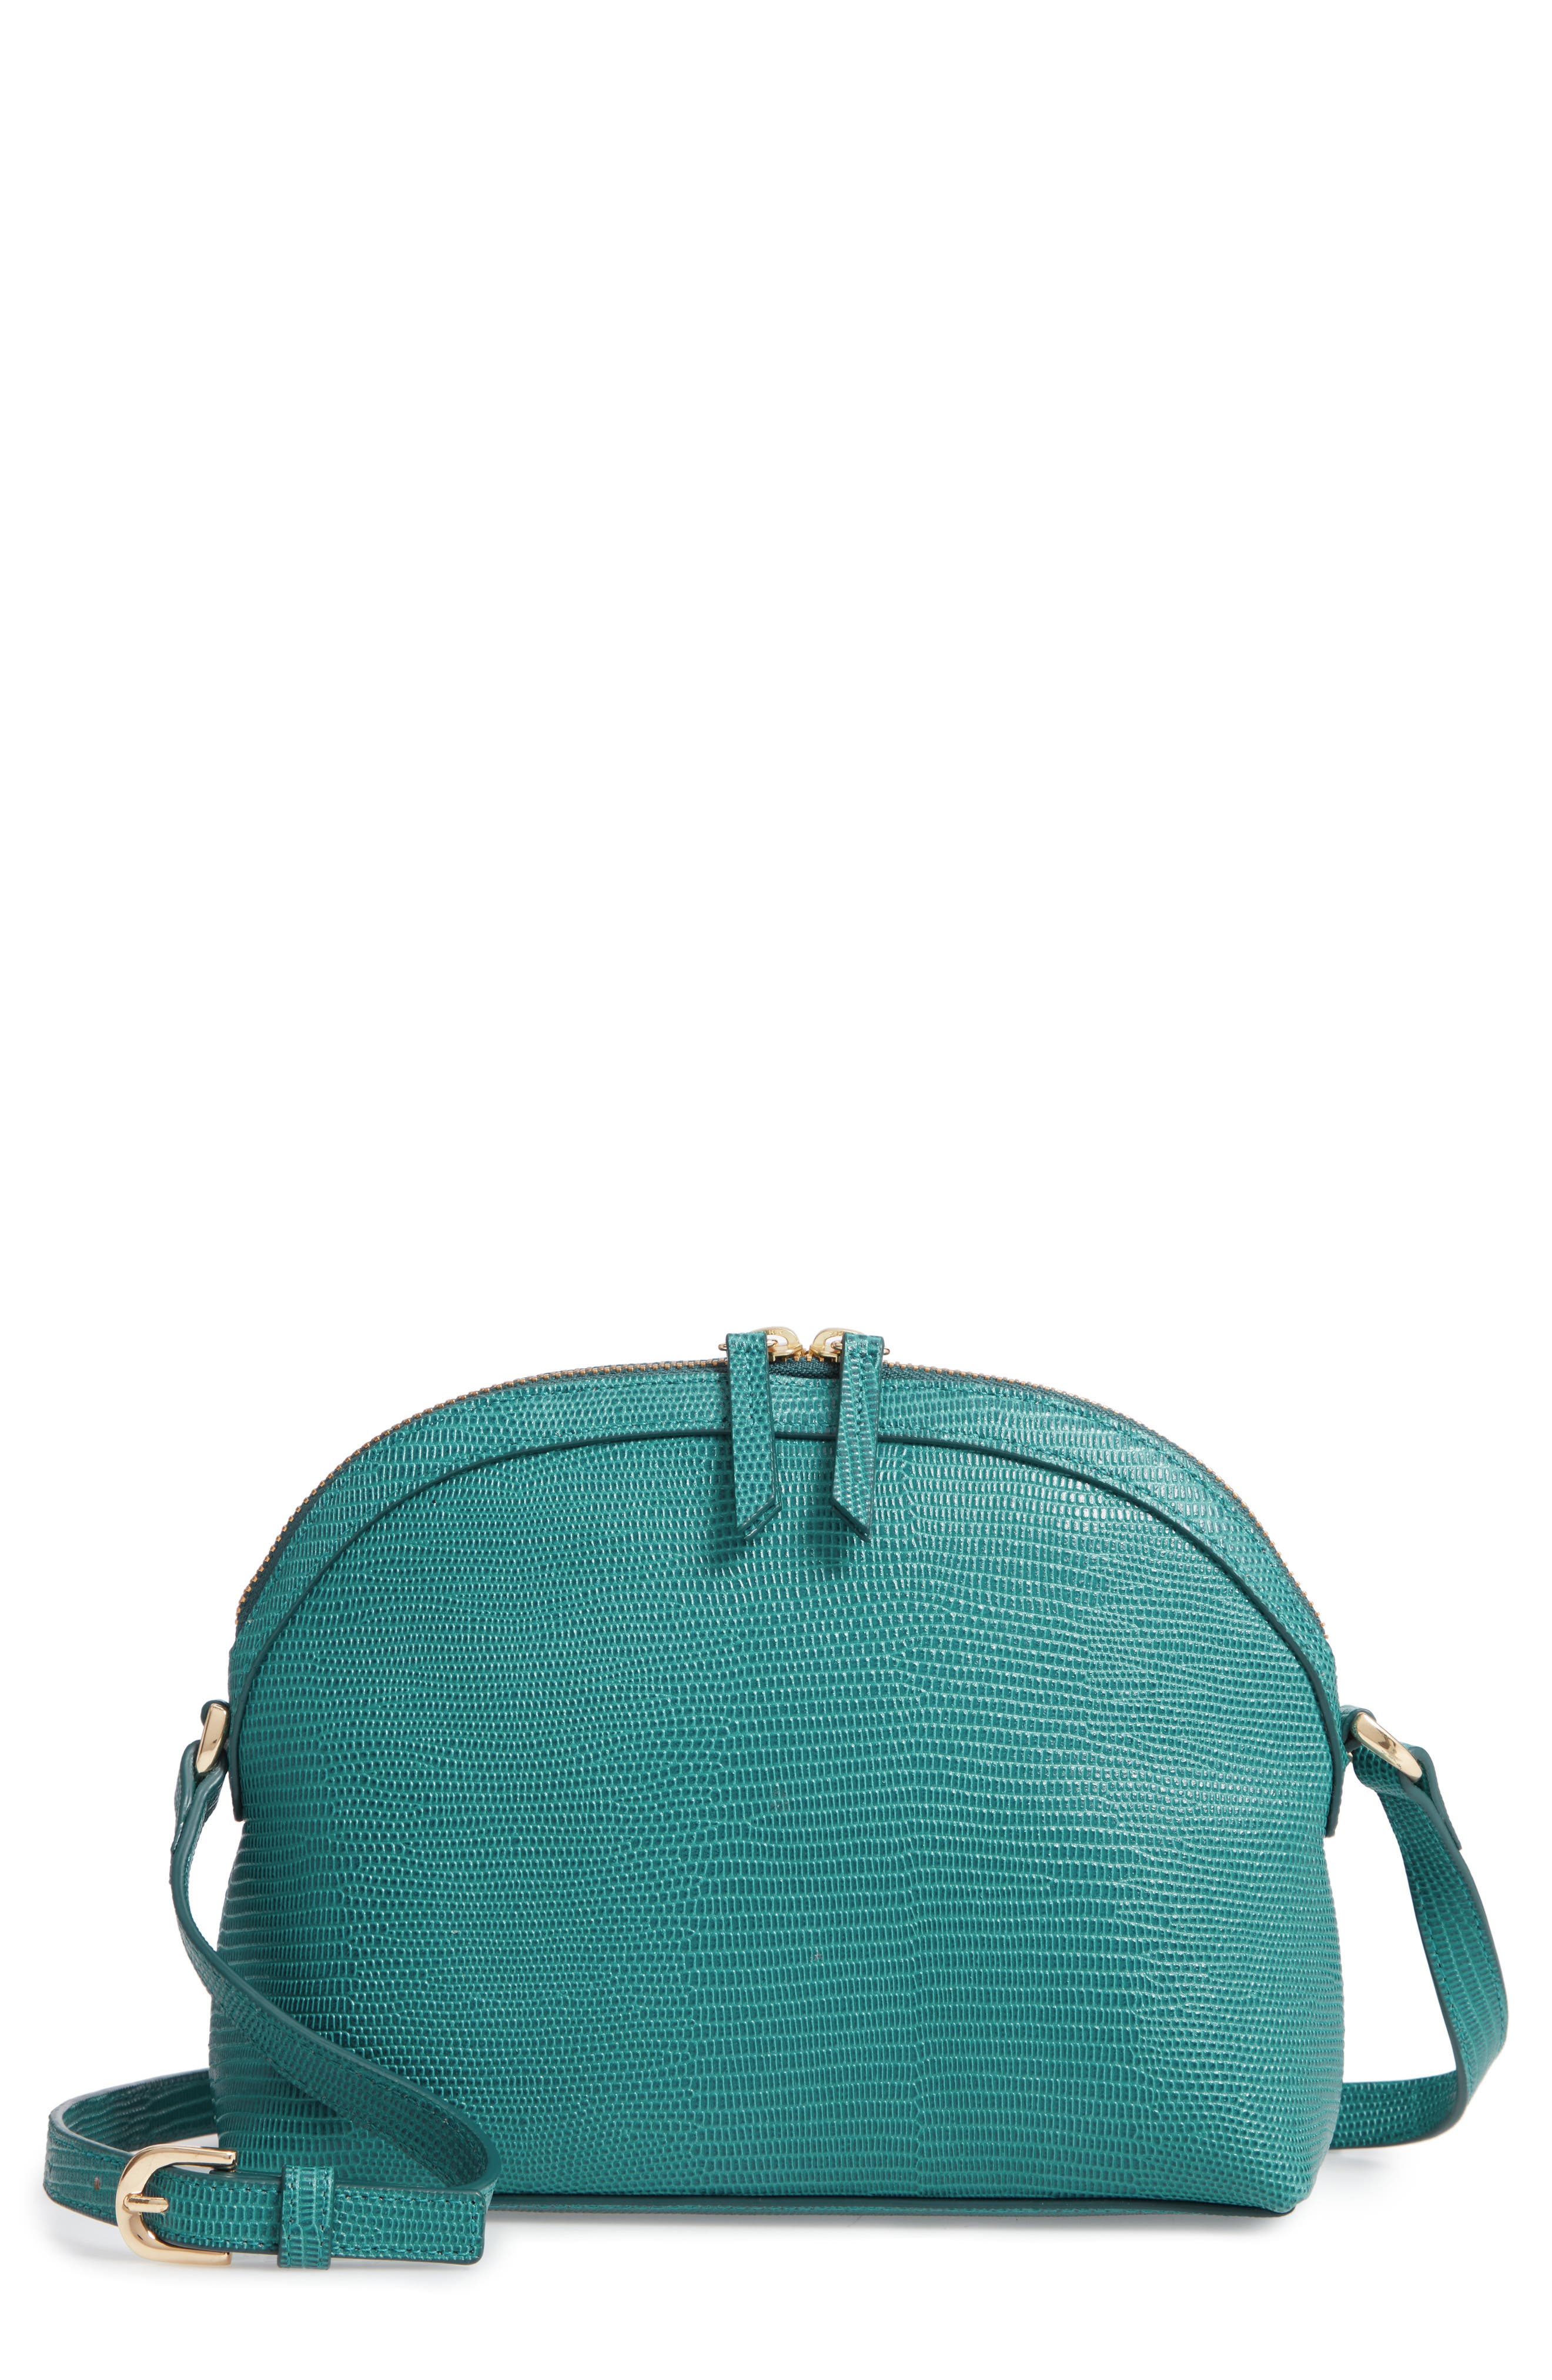 Isobel Half Moon Leather Crossbody Bag,                             Main thumbnail 1, color,                             TEAL HARBOR